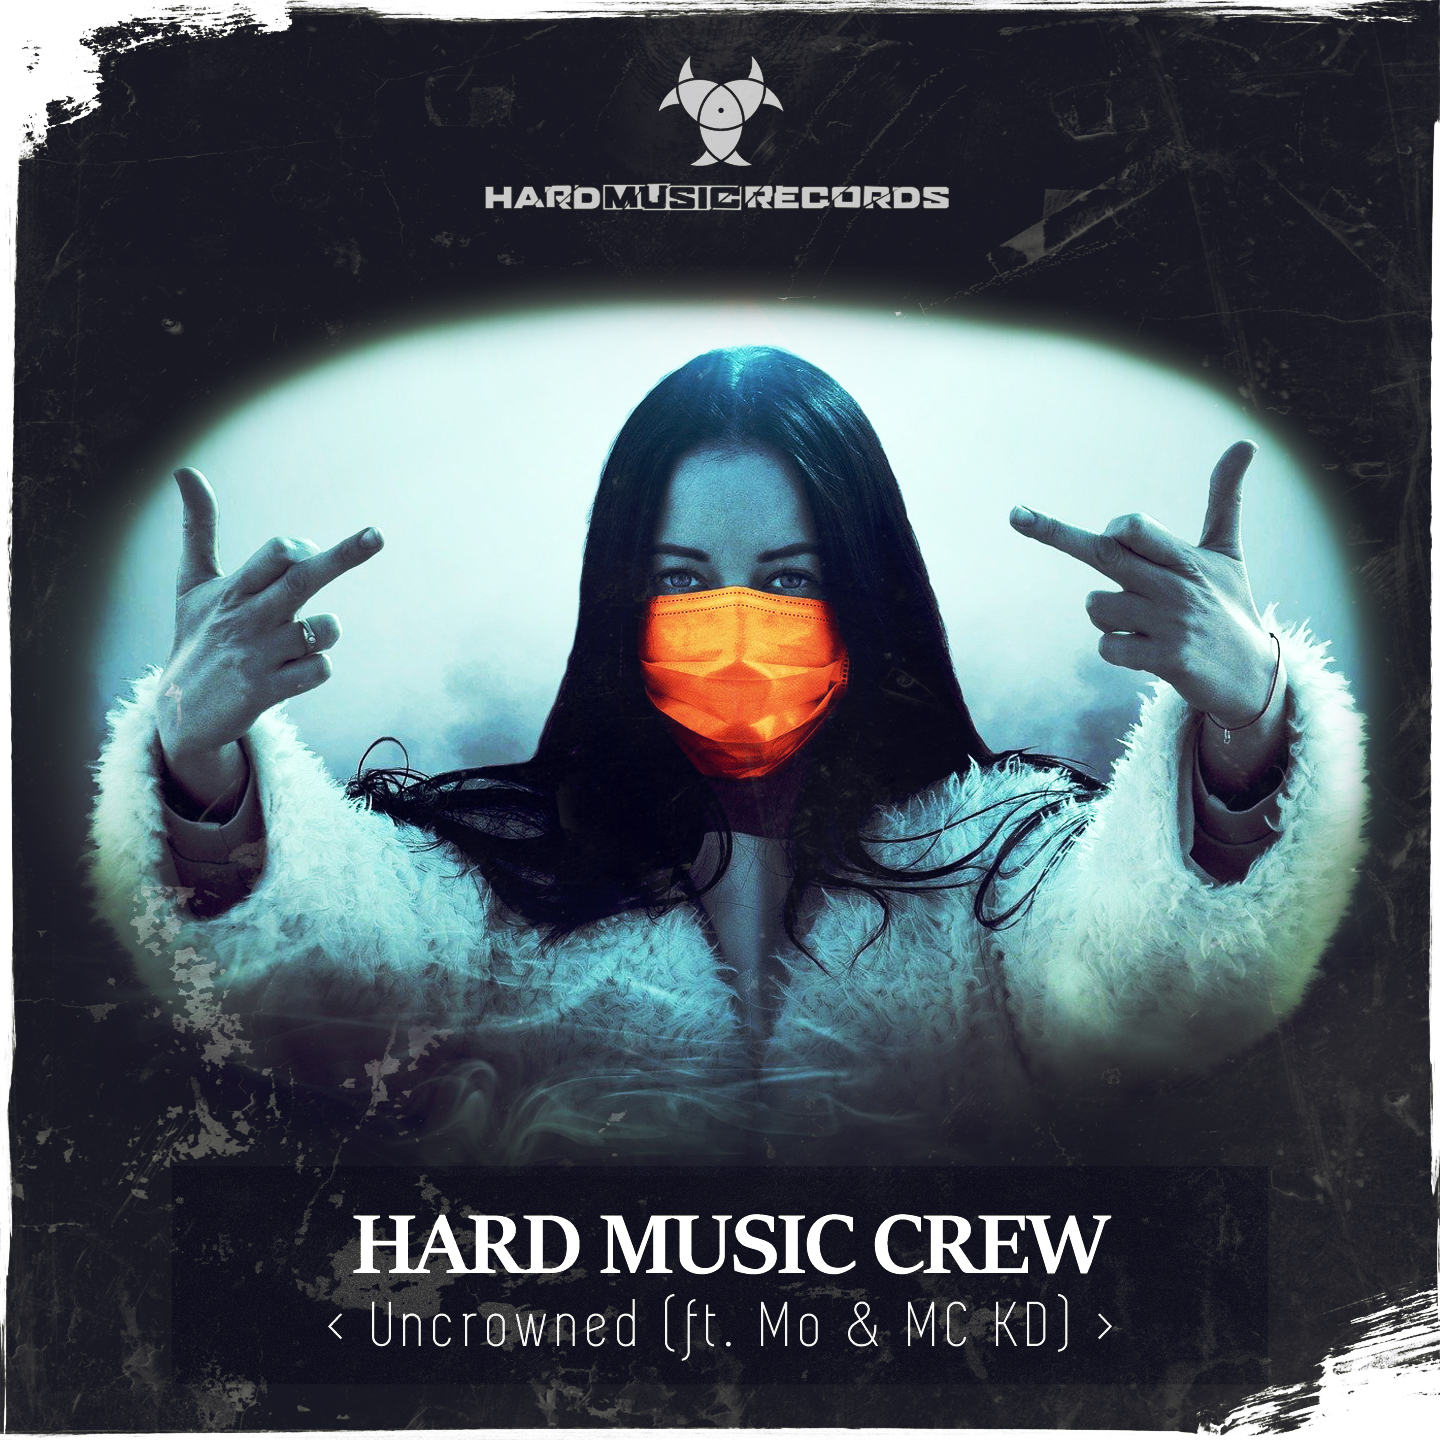 Uncrowned by Hard Music Crew ft. Mo & MC KD